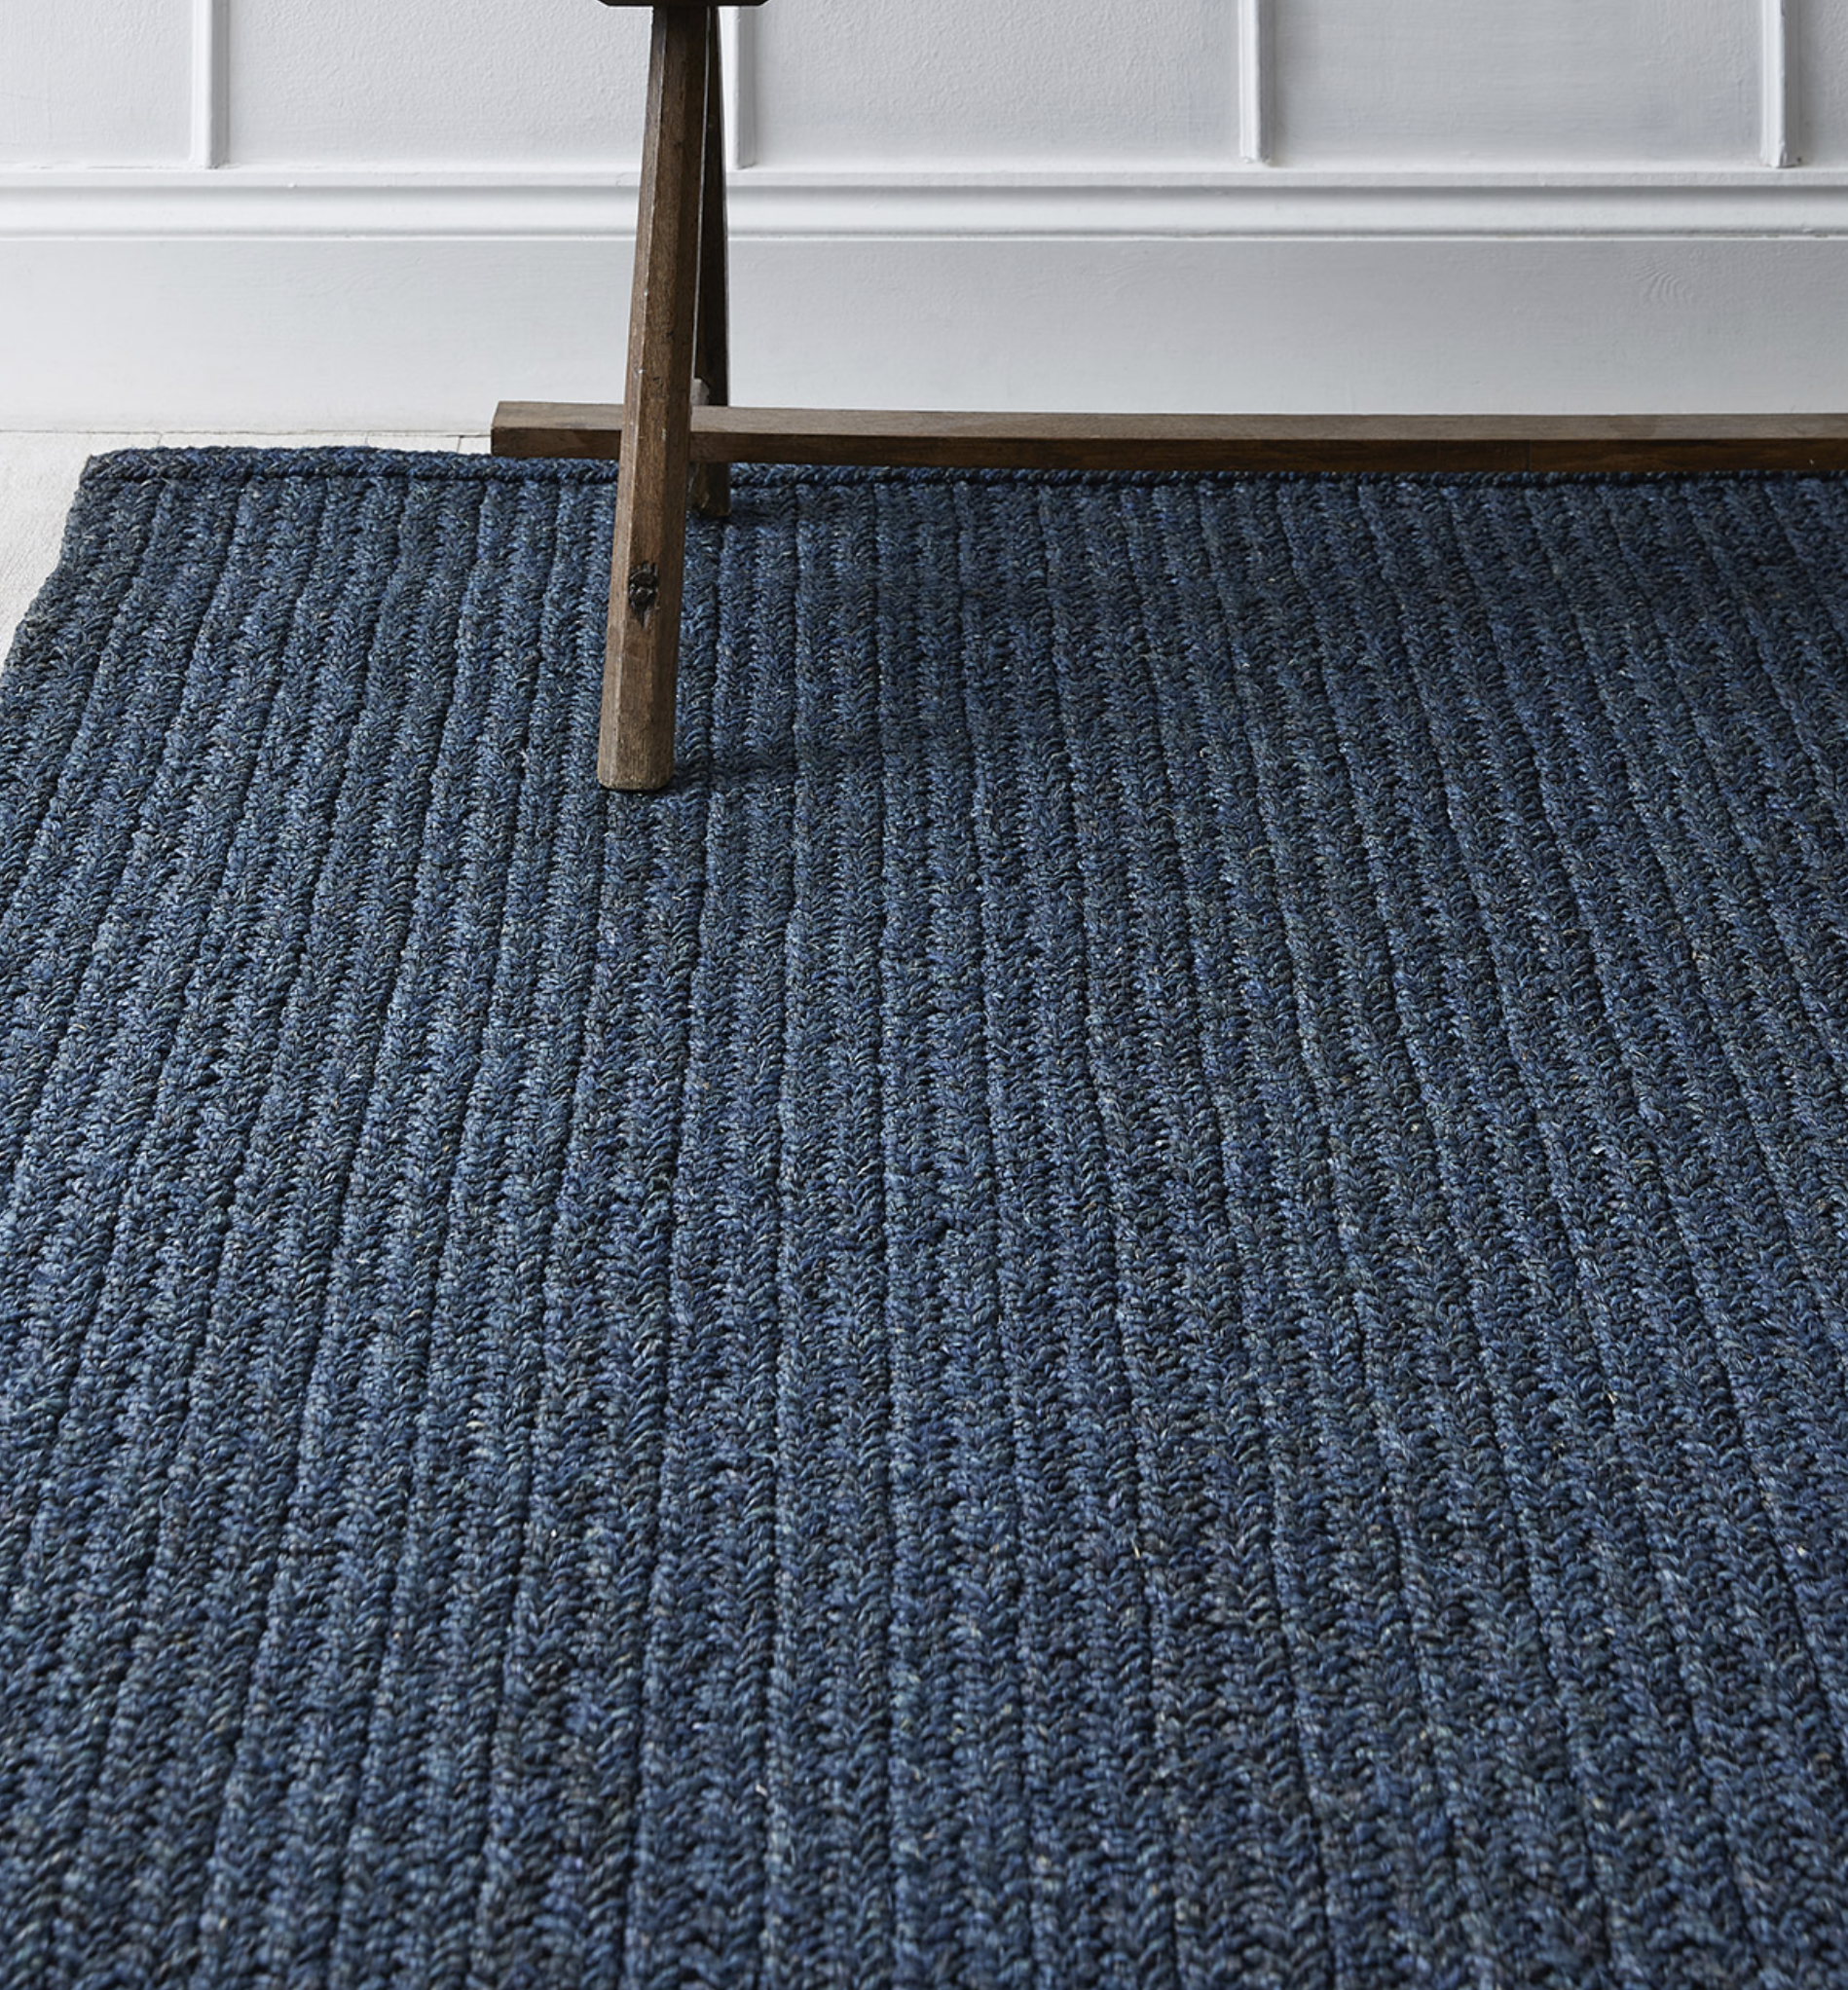 Fibre from the okra plant can be woven into flooring. Flock Living Ltd offers okra flooring